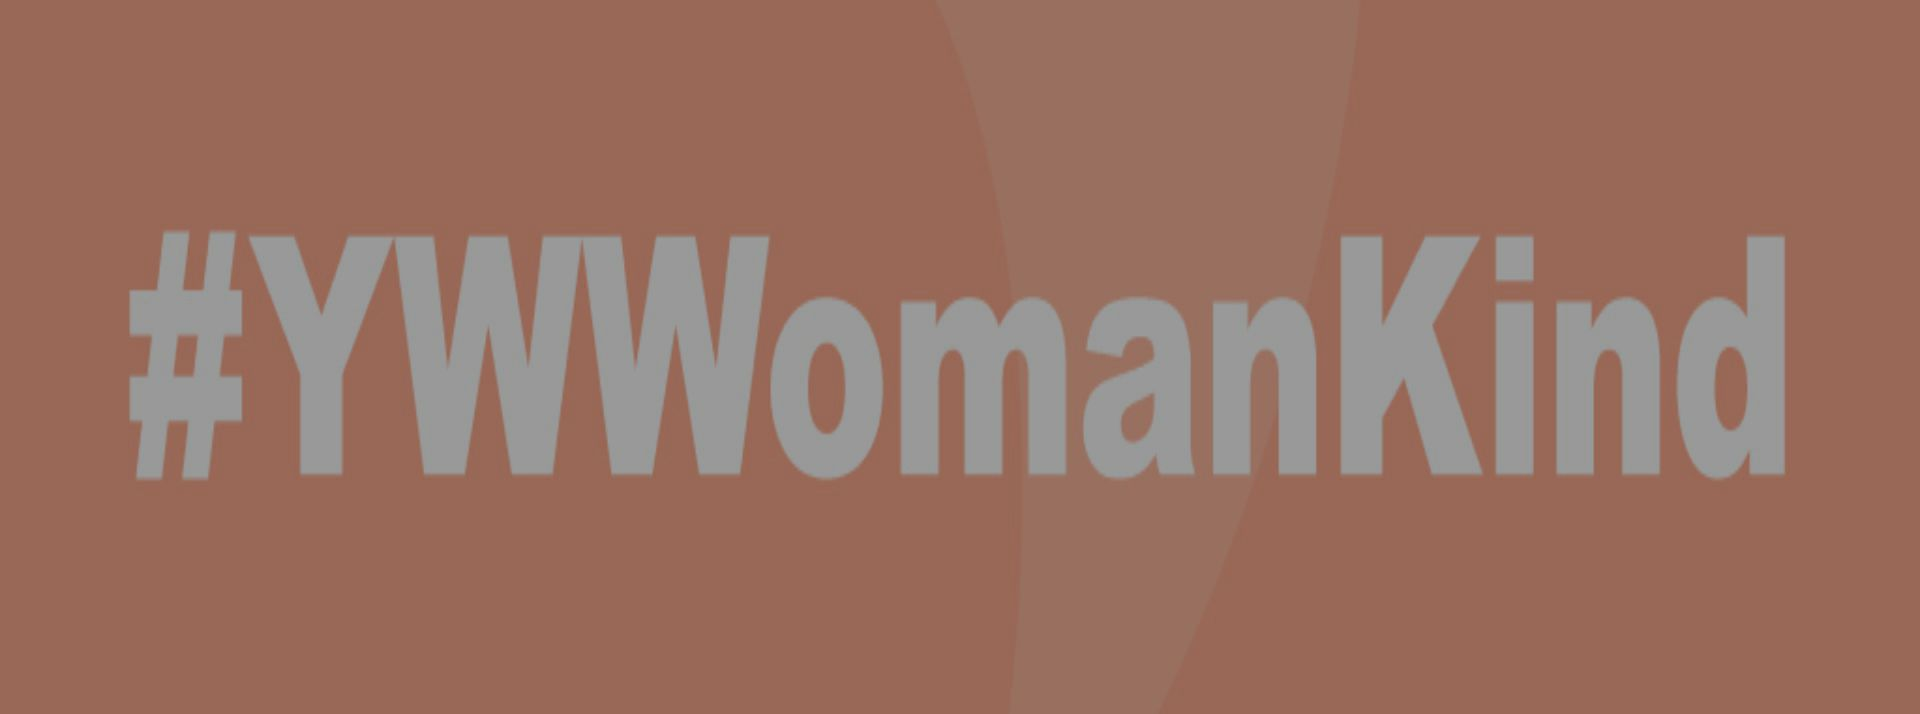 Are you #YWwomanKIND?